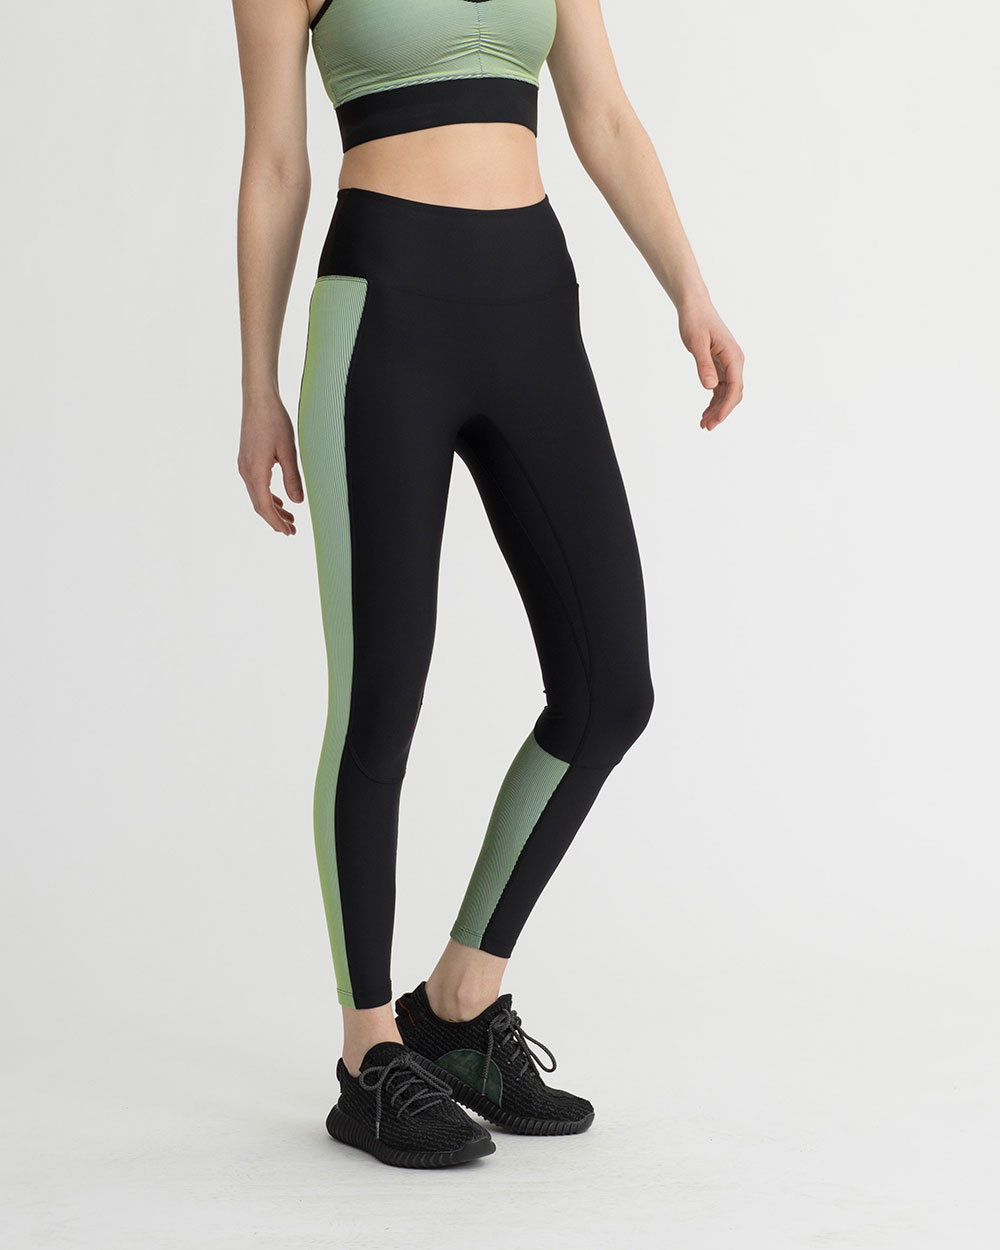 LEVEE LEGGINGS IRIDESCENT LIME GREEN & BLACK COMBO